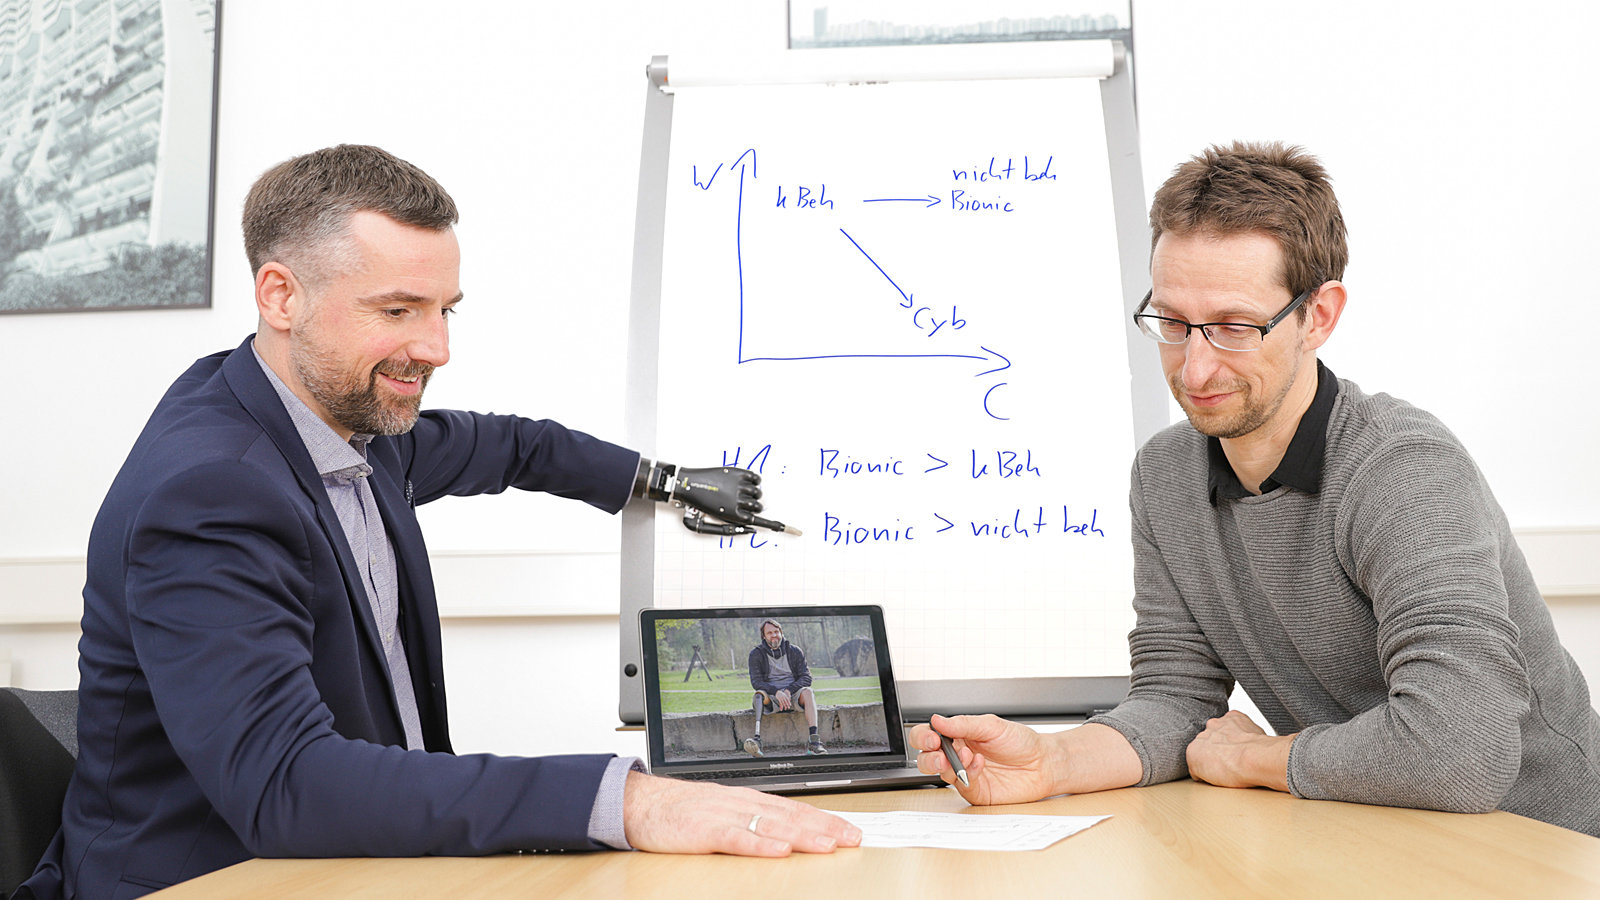 Two men, one with a bionic prosthesis, sitting together. The man with the prosthesis ist pointing at a board with equations.